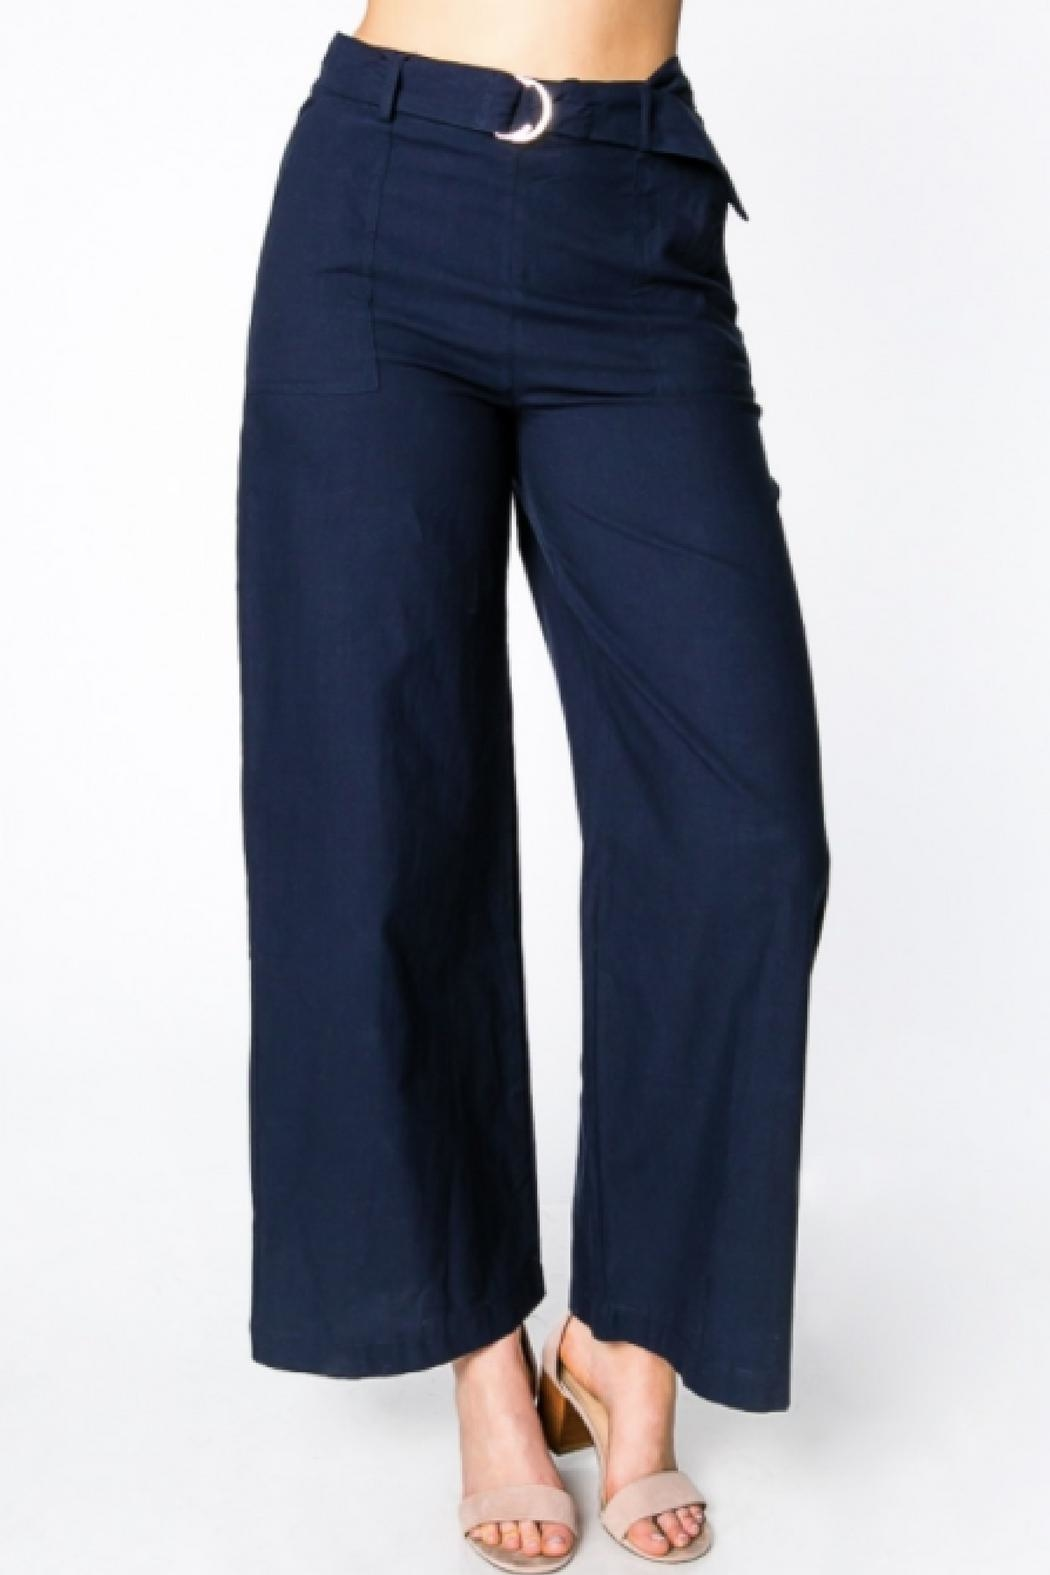 Everly Wide-Leg Belted Pants - Front Full Image